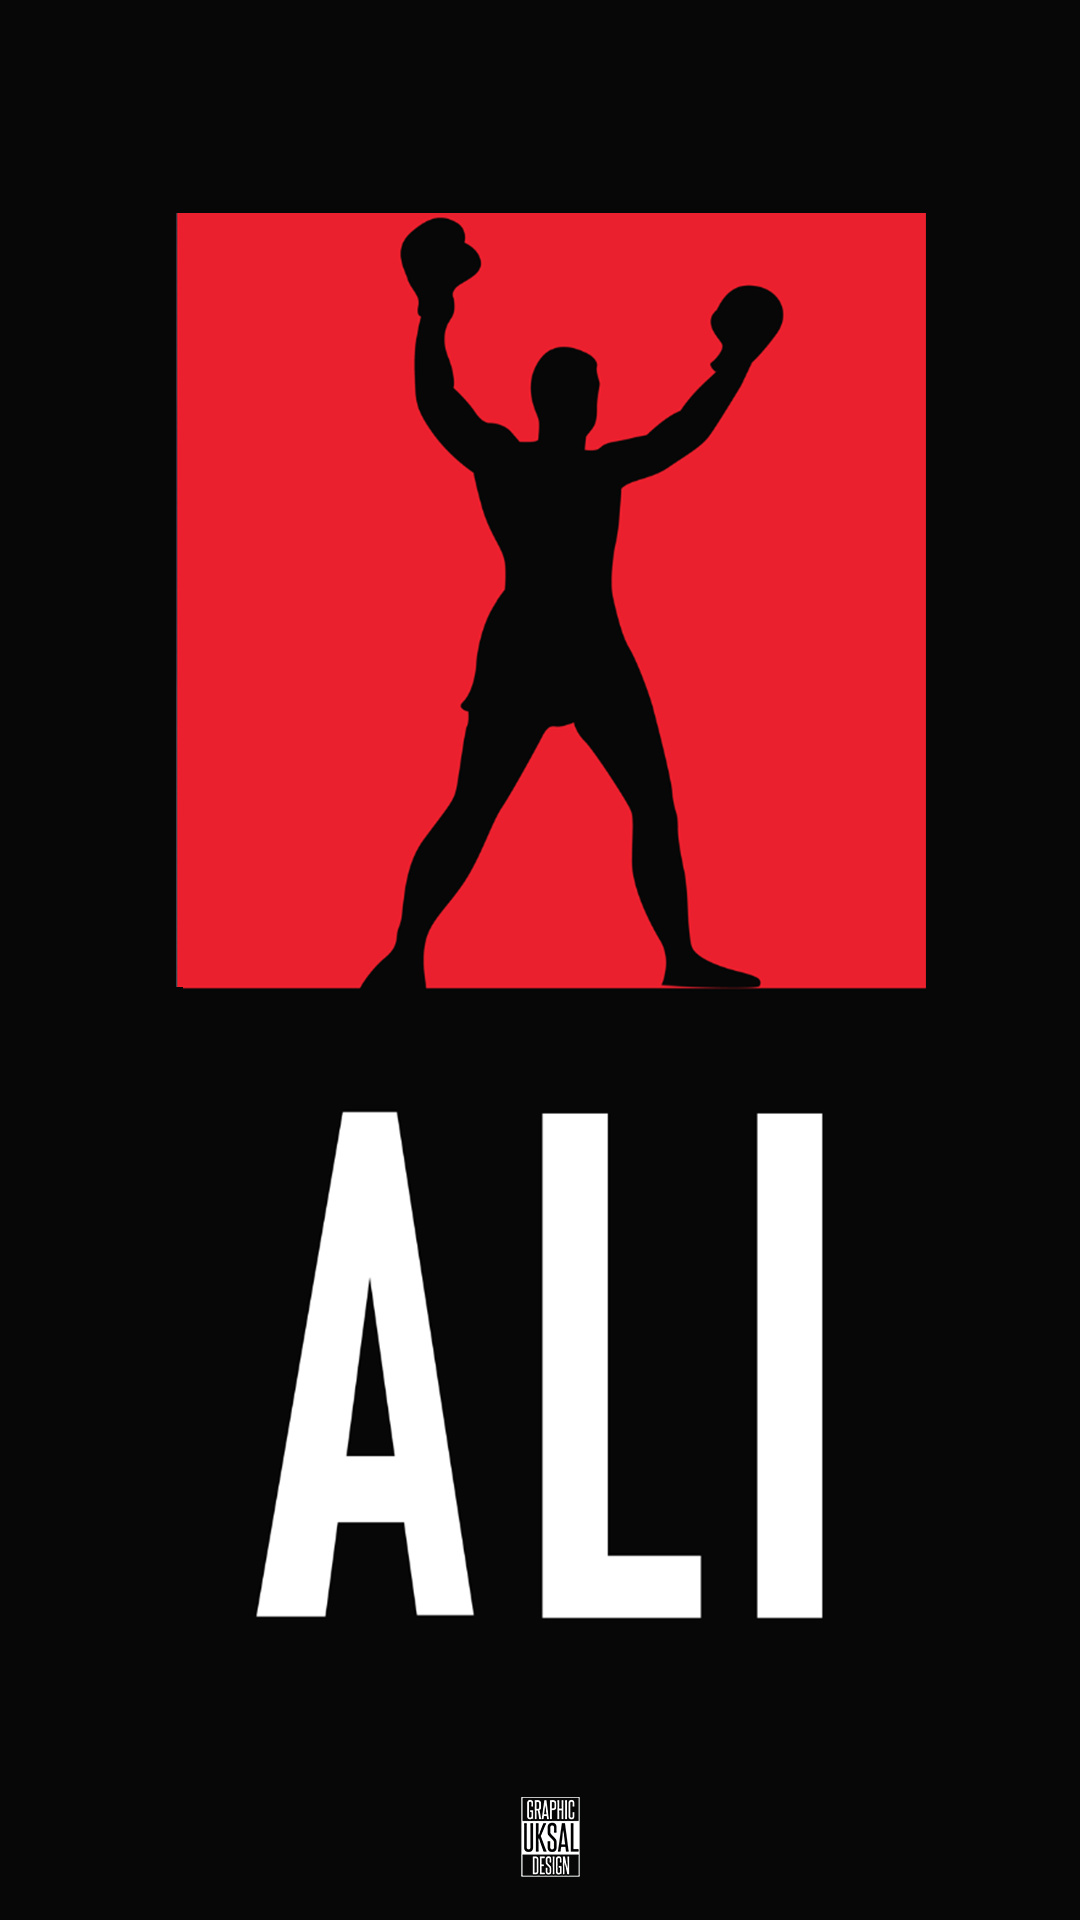 iPhone wallpaper muhammad ali logo Muhammad Ali